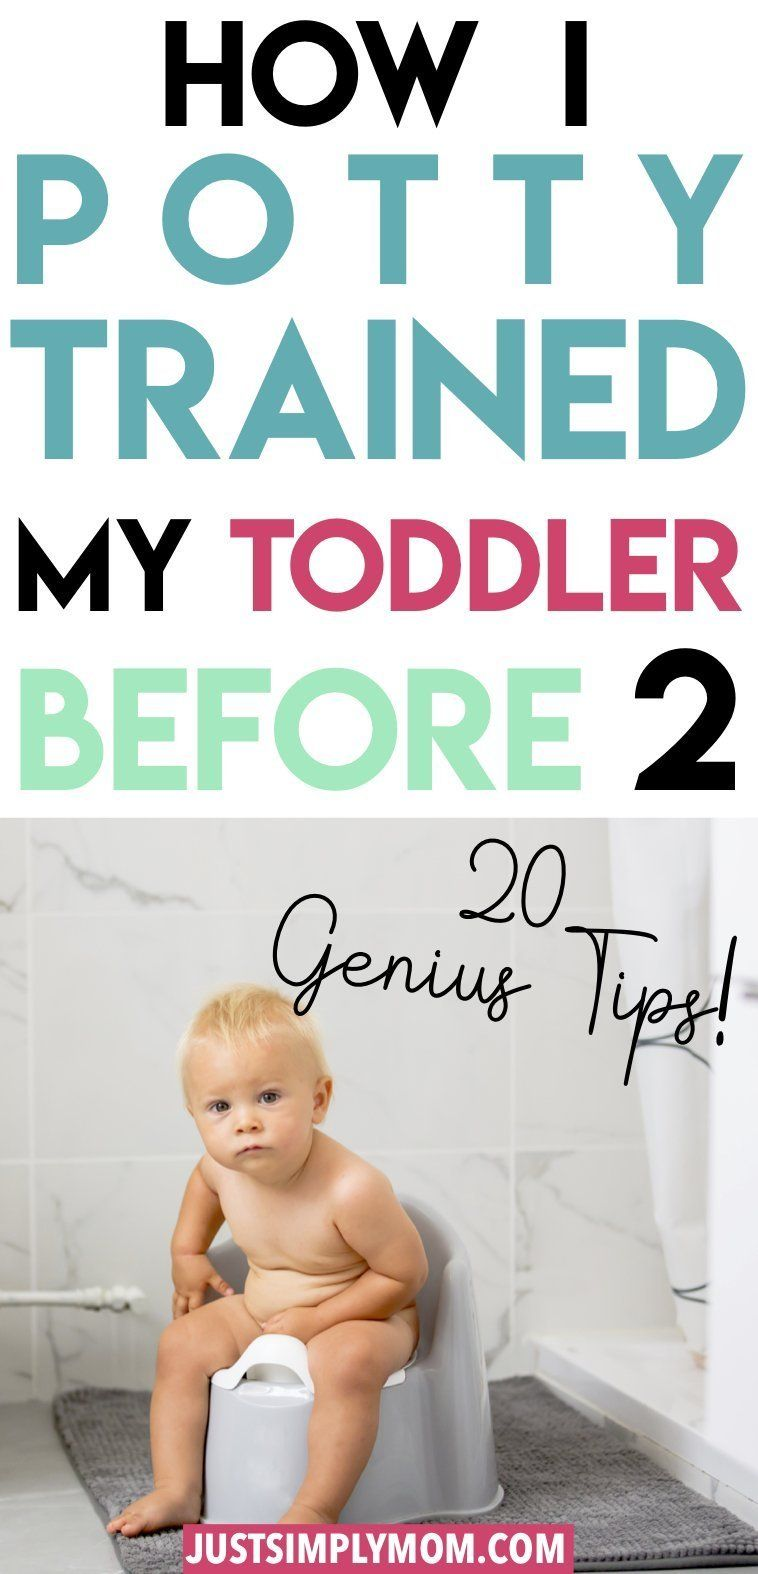 22 Tips for Potty Training Your Toddler BEFORE 2 Years Old - Just Simply Mom